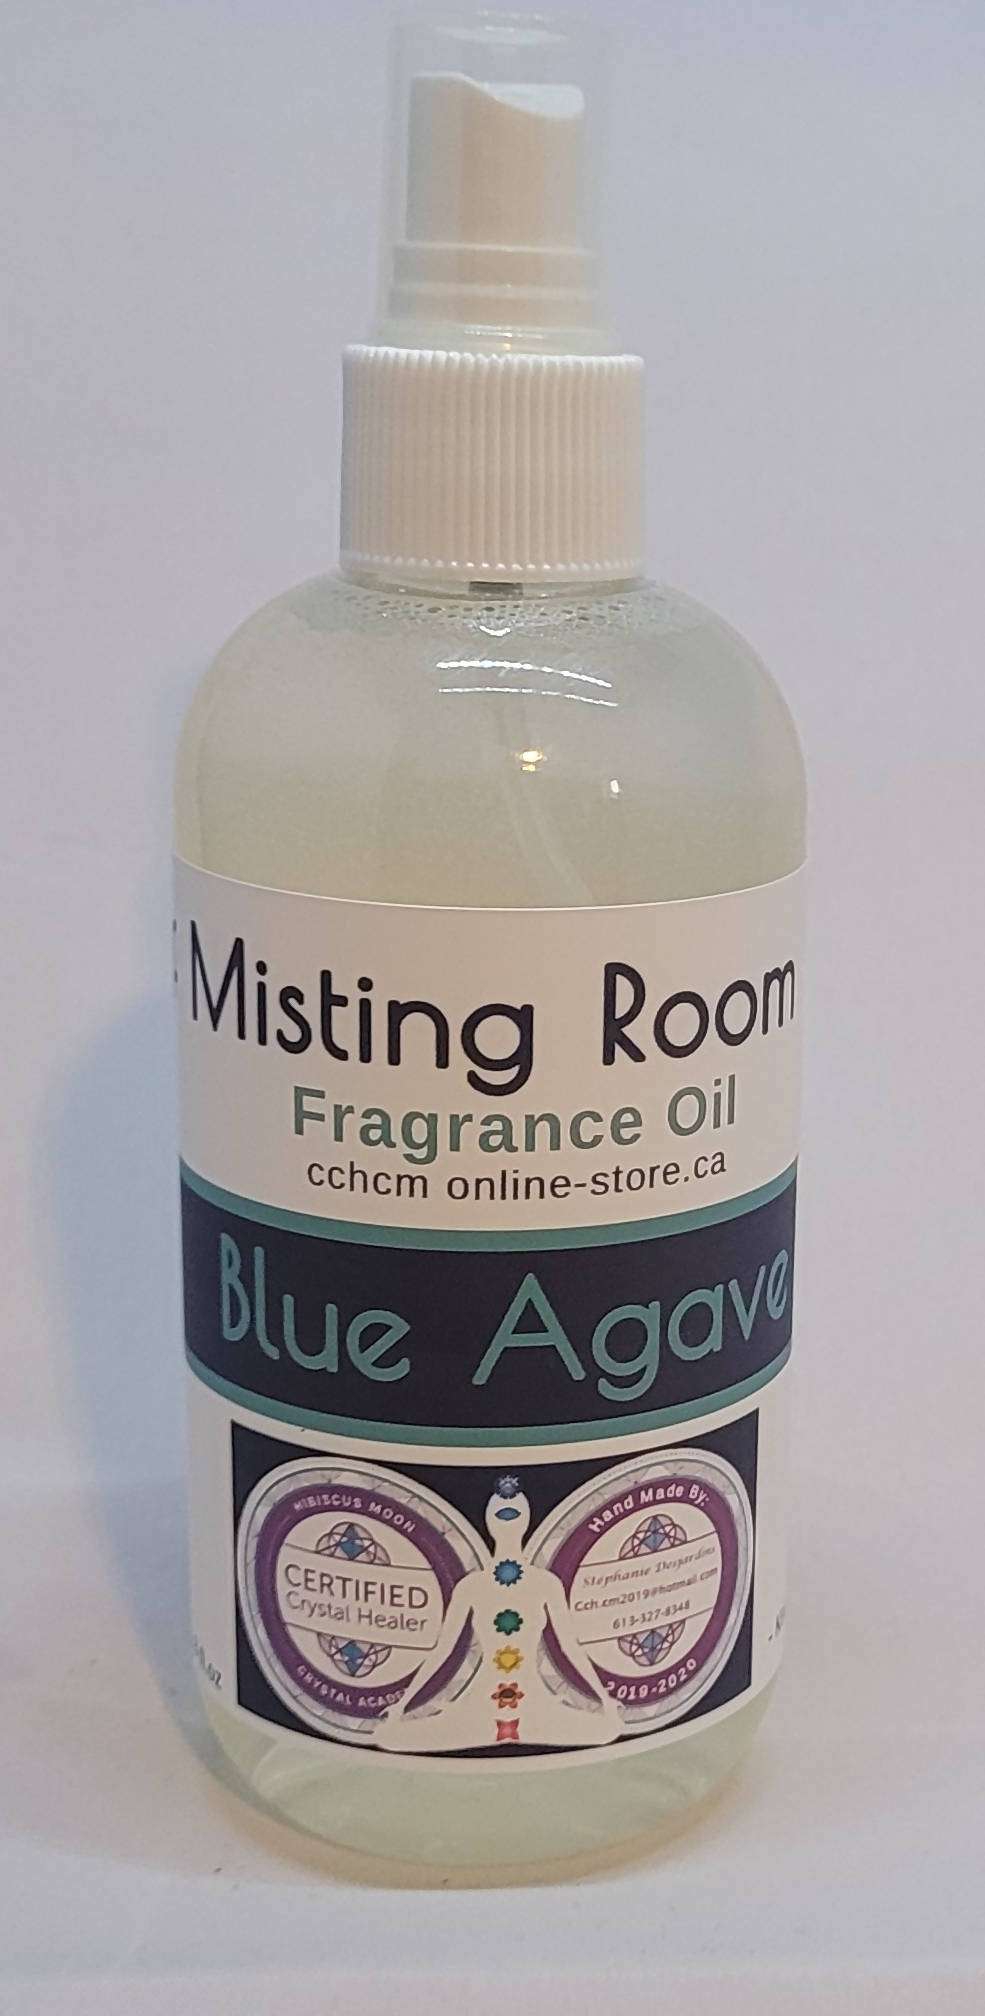 Relief - Fragrance Oil Room Sprays 8oz.